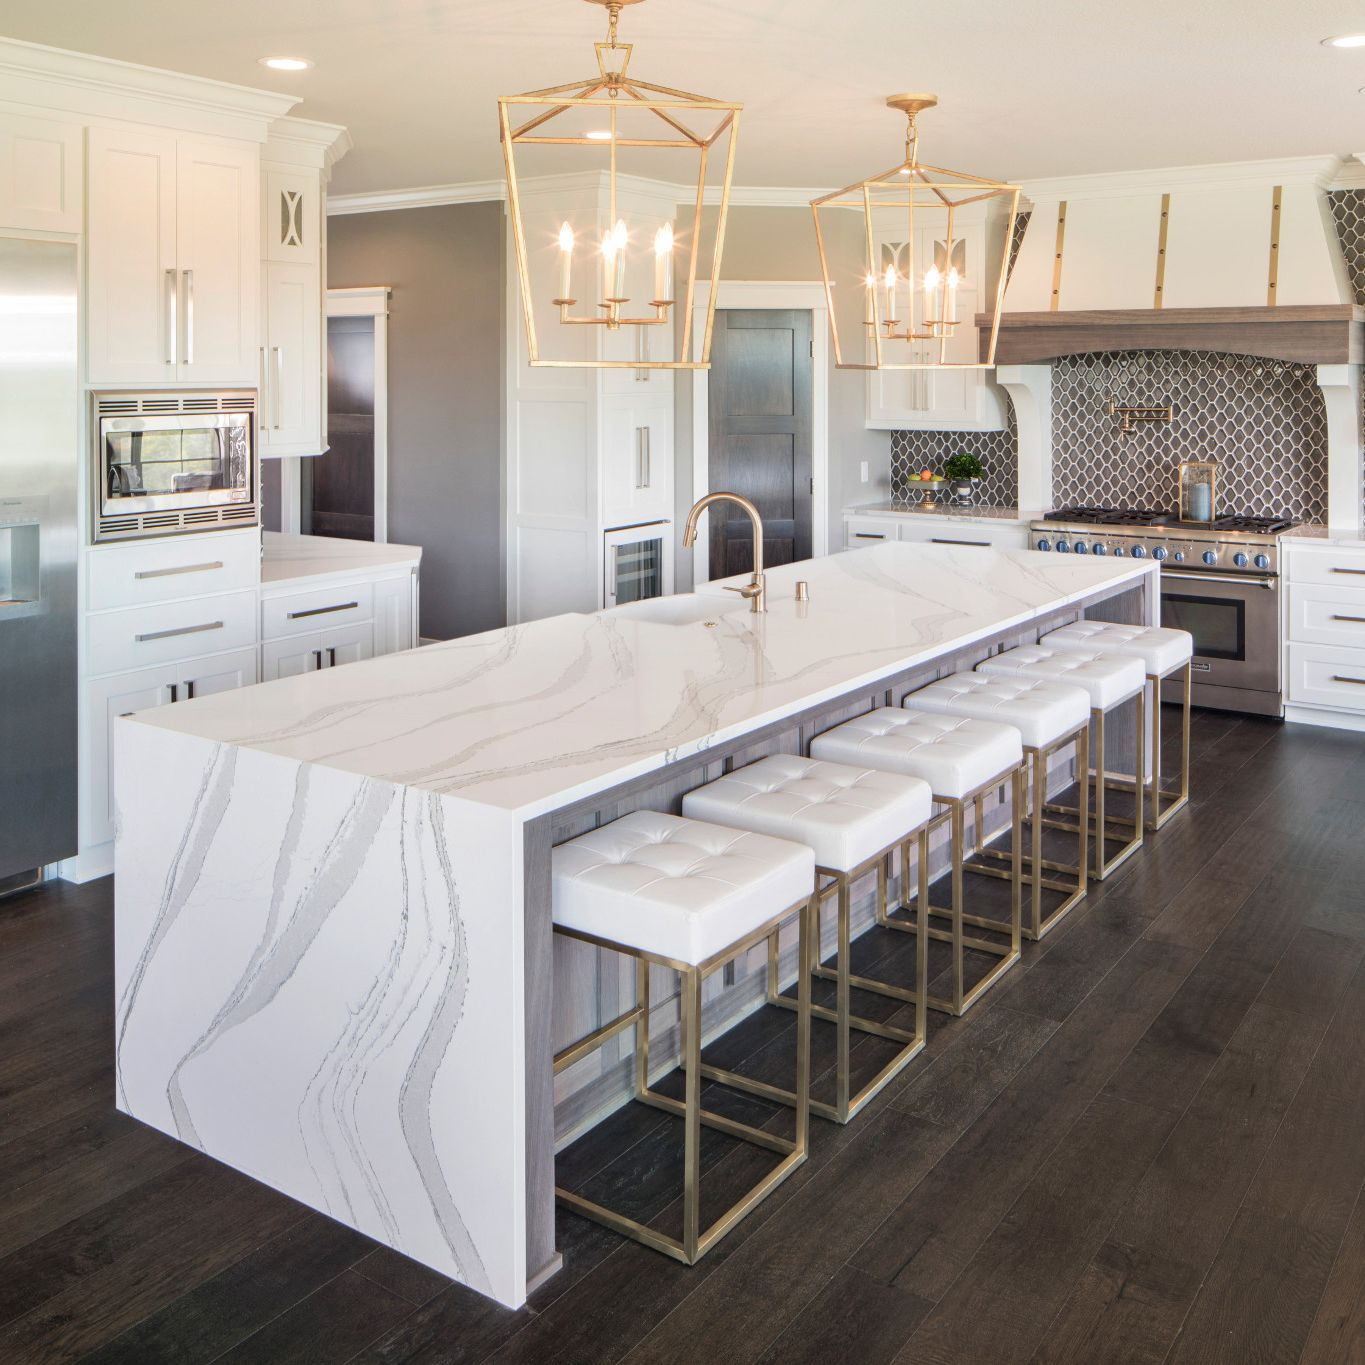 White marble-look quartz countertops in a white and gold kitchen.